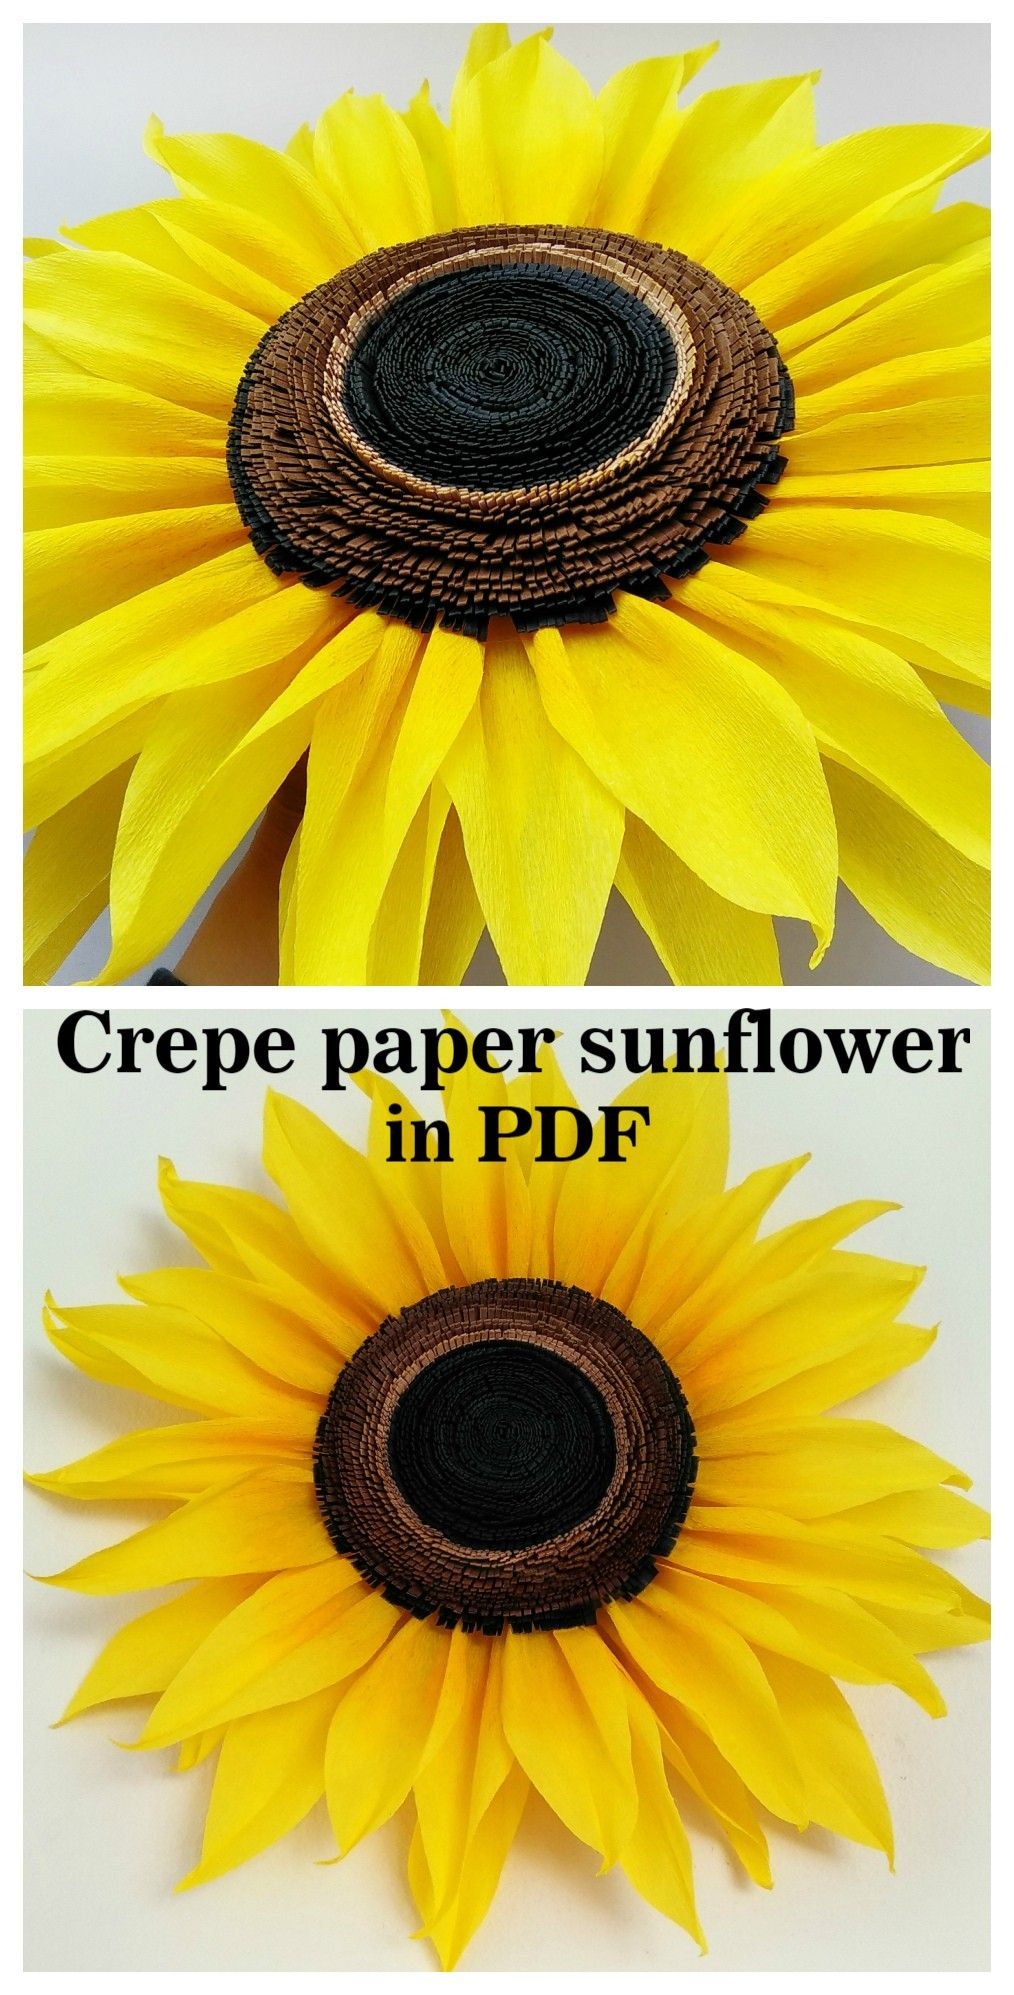 Crepe paper sunflower tutorial in PDF #crepepaperroses